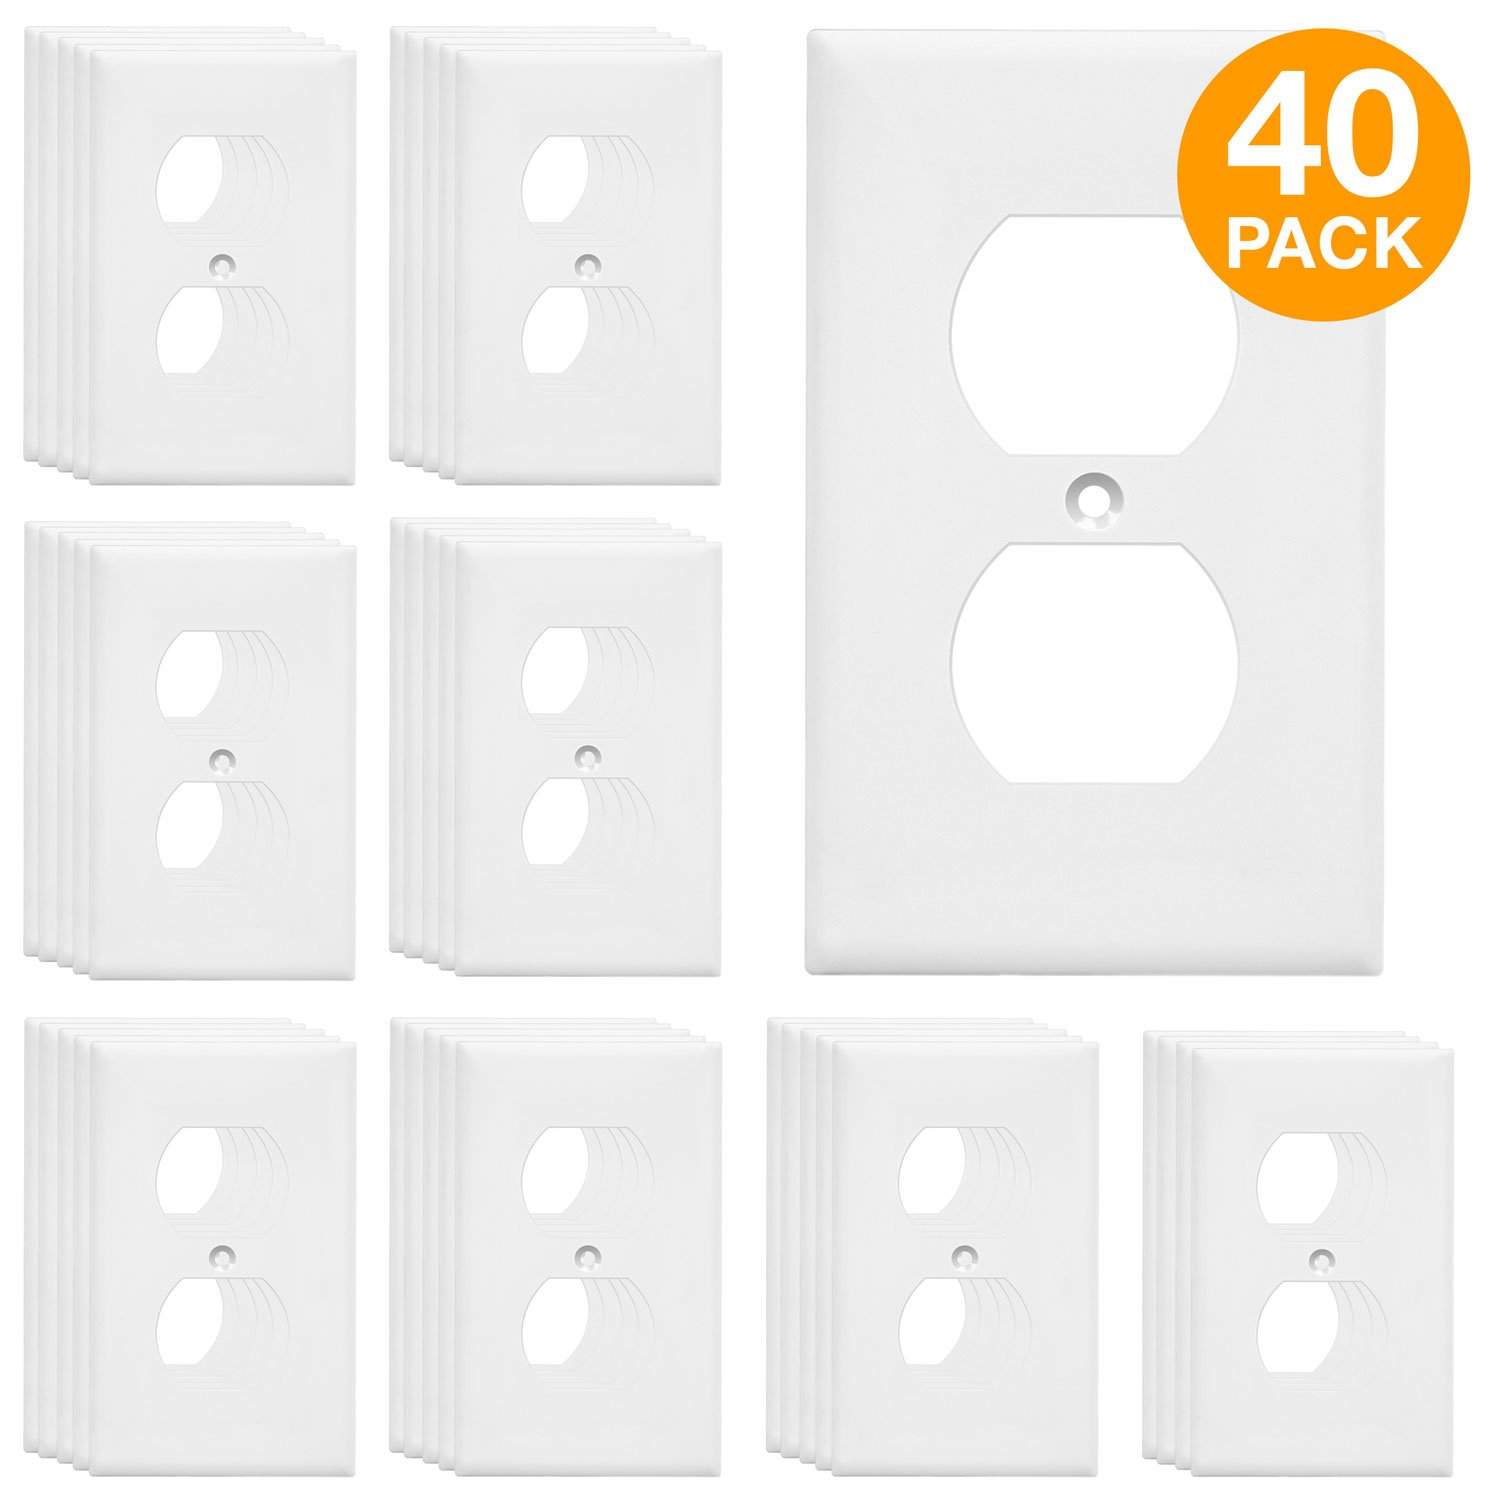 ENERLITES Duplex Receptacle Outlet Wall Plate, Size 1-Gang 4.50'' x 2.76'', Unbreakable Polycarbonate Thermoplastic, UL Listed, 8821-W-40PCS, White (40 Pack)